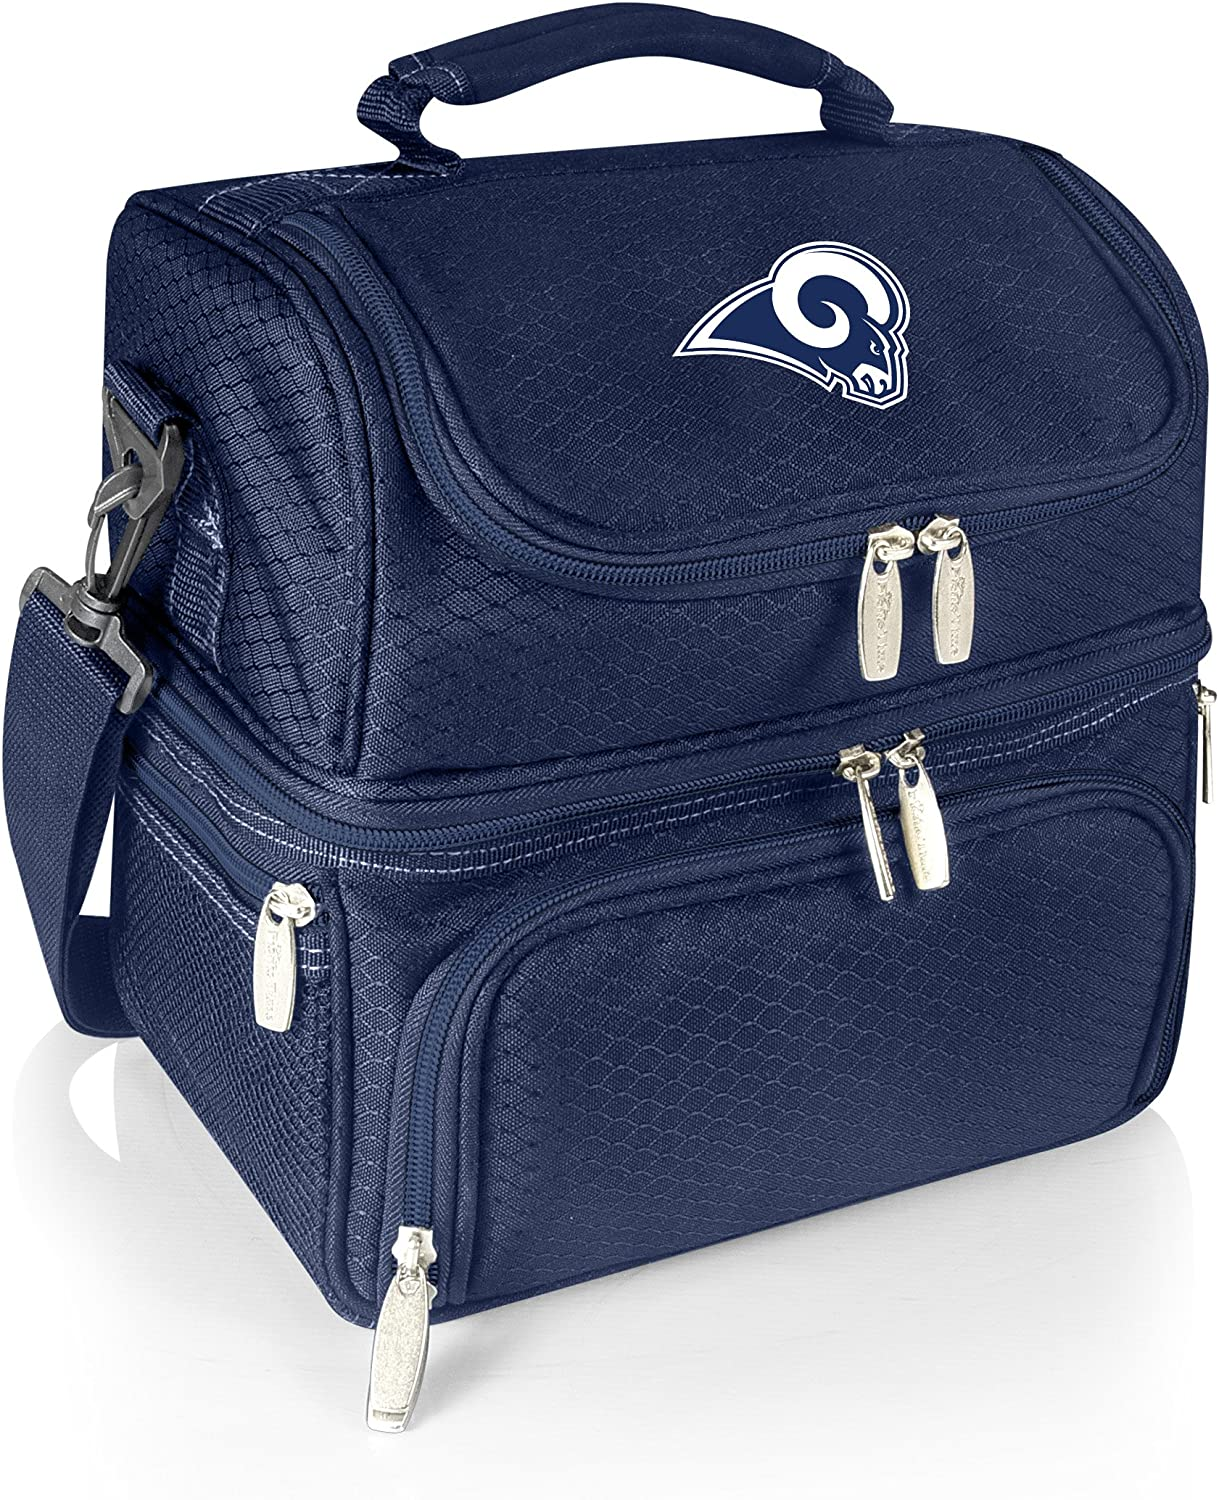 NFL Pranzo Insulated Lunch Tote with Picnic Service for One